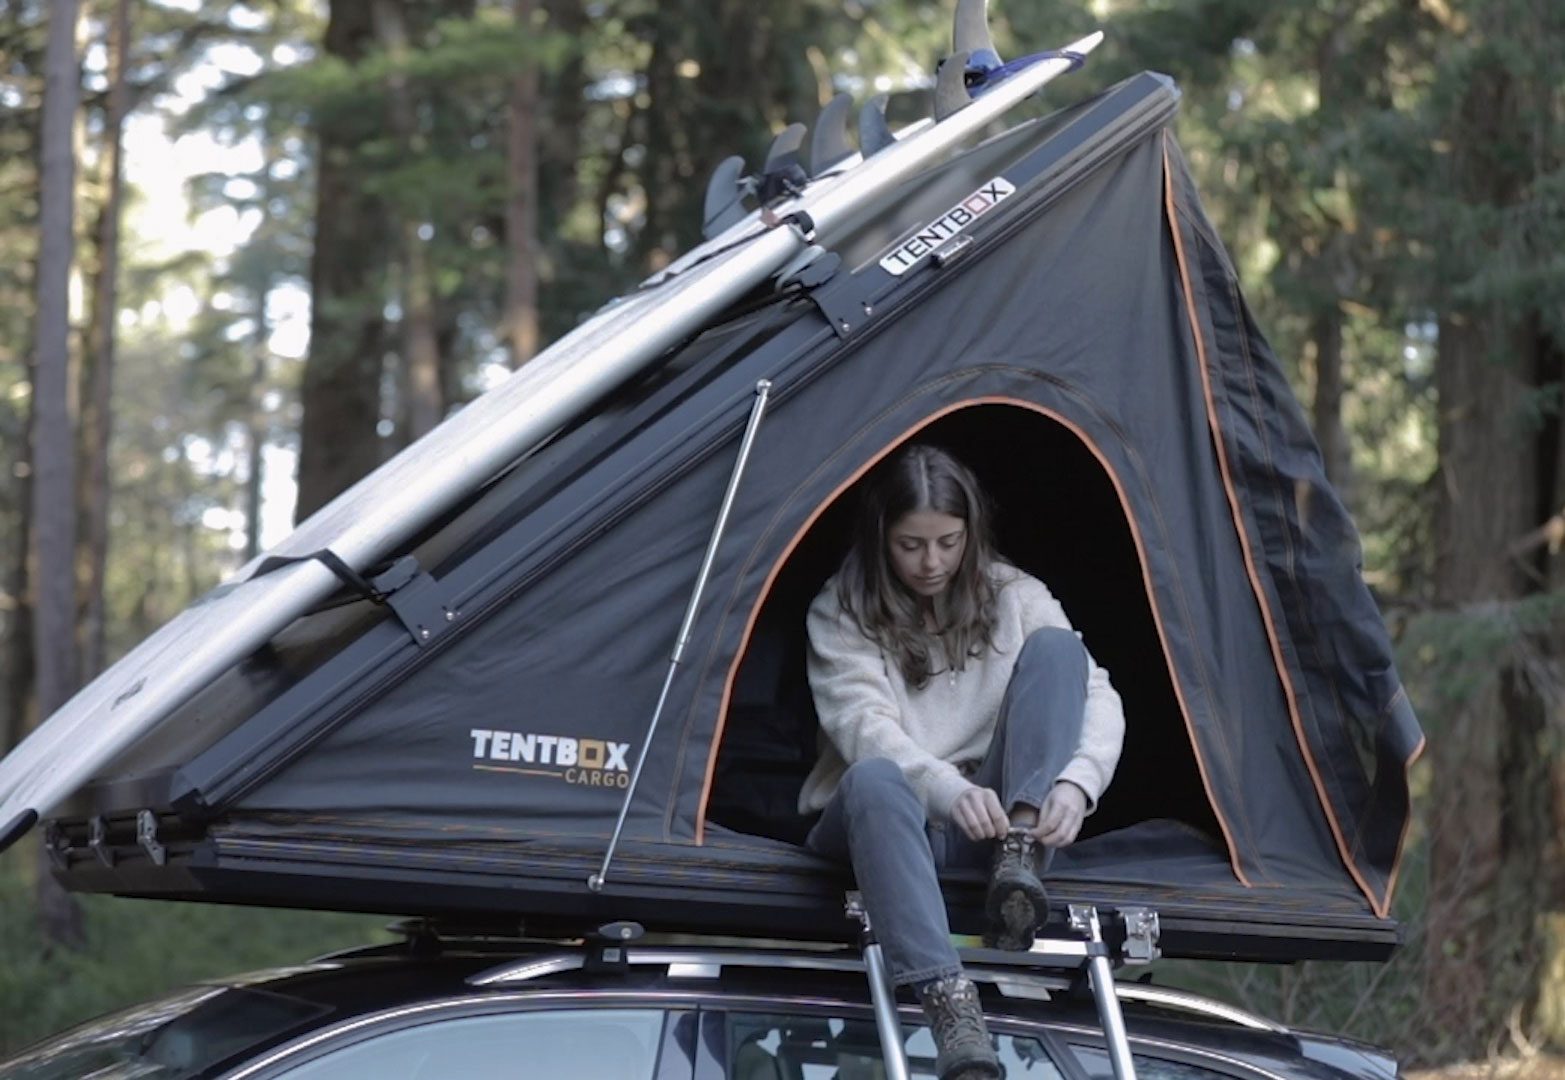 The Tent Box Cargo                                     - Now In Stock